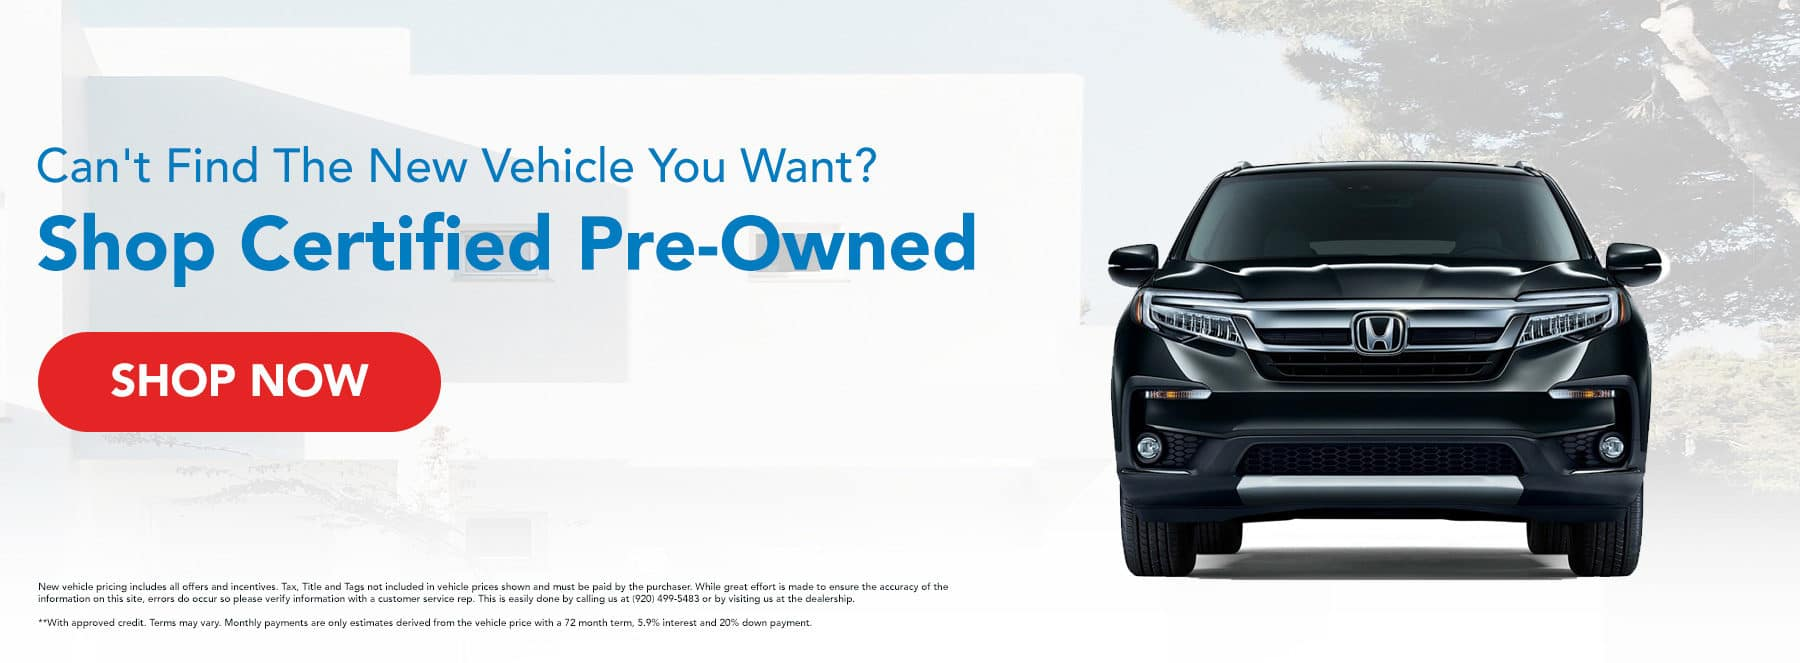 Can't Find The New Vehicle You Want? Shop Certified Pre-Owned